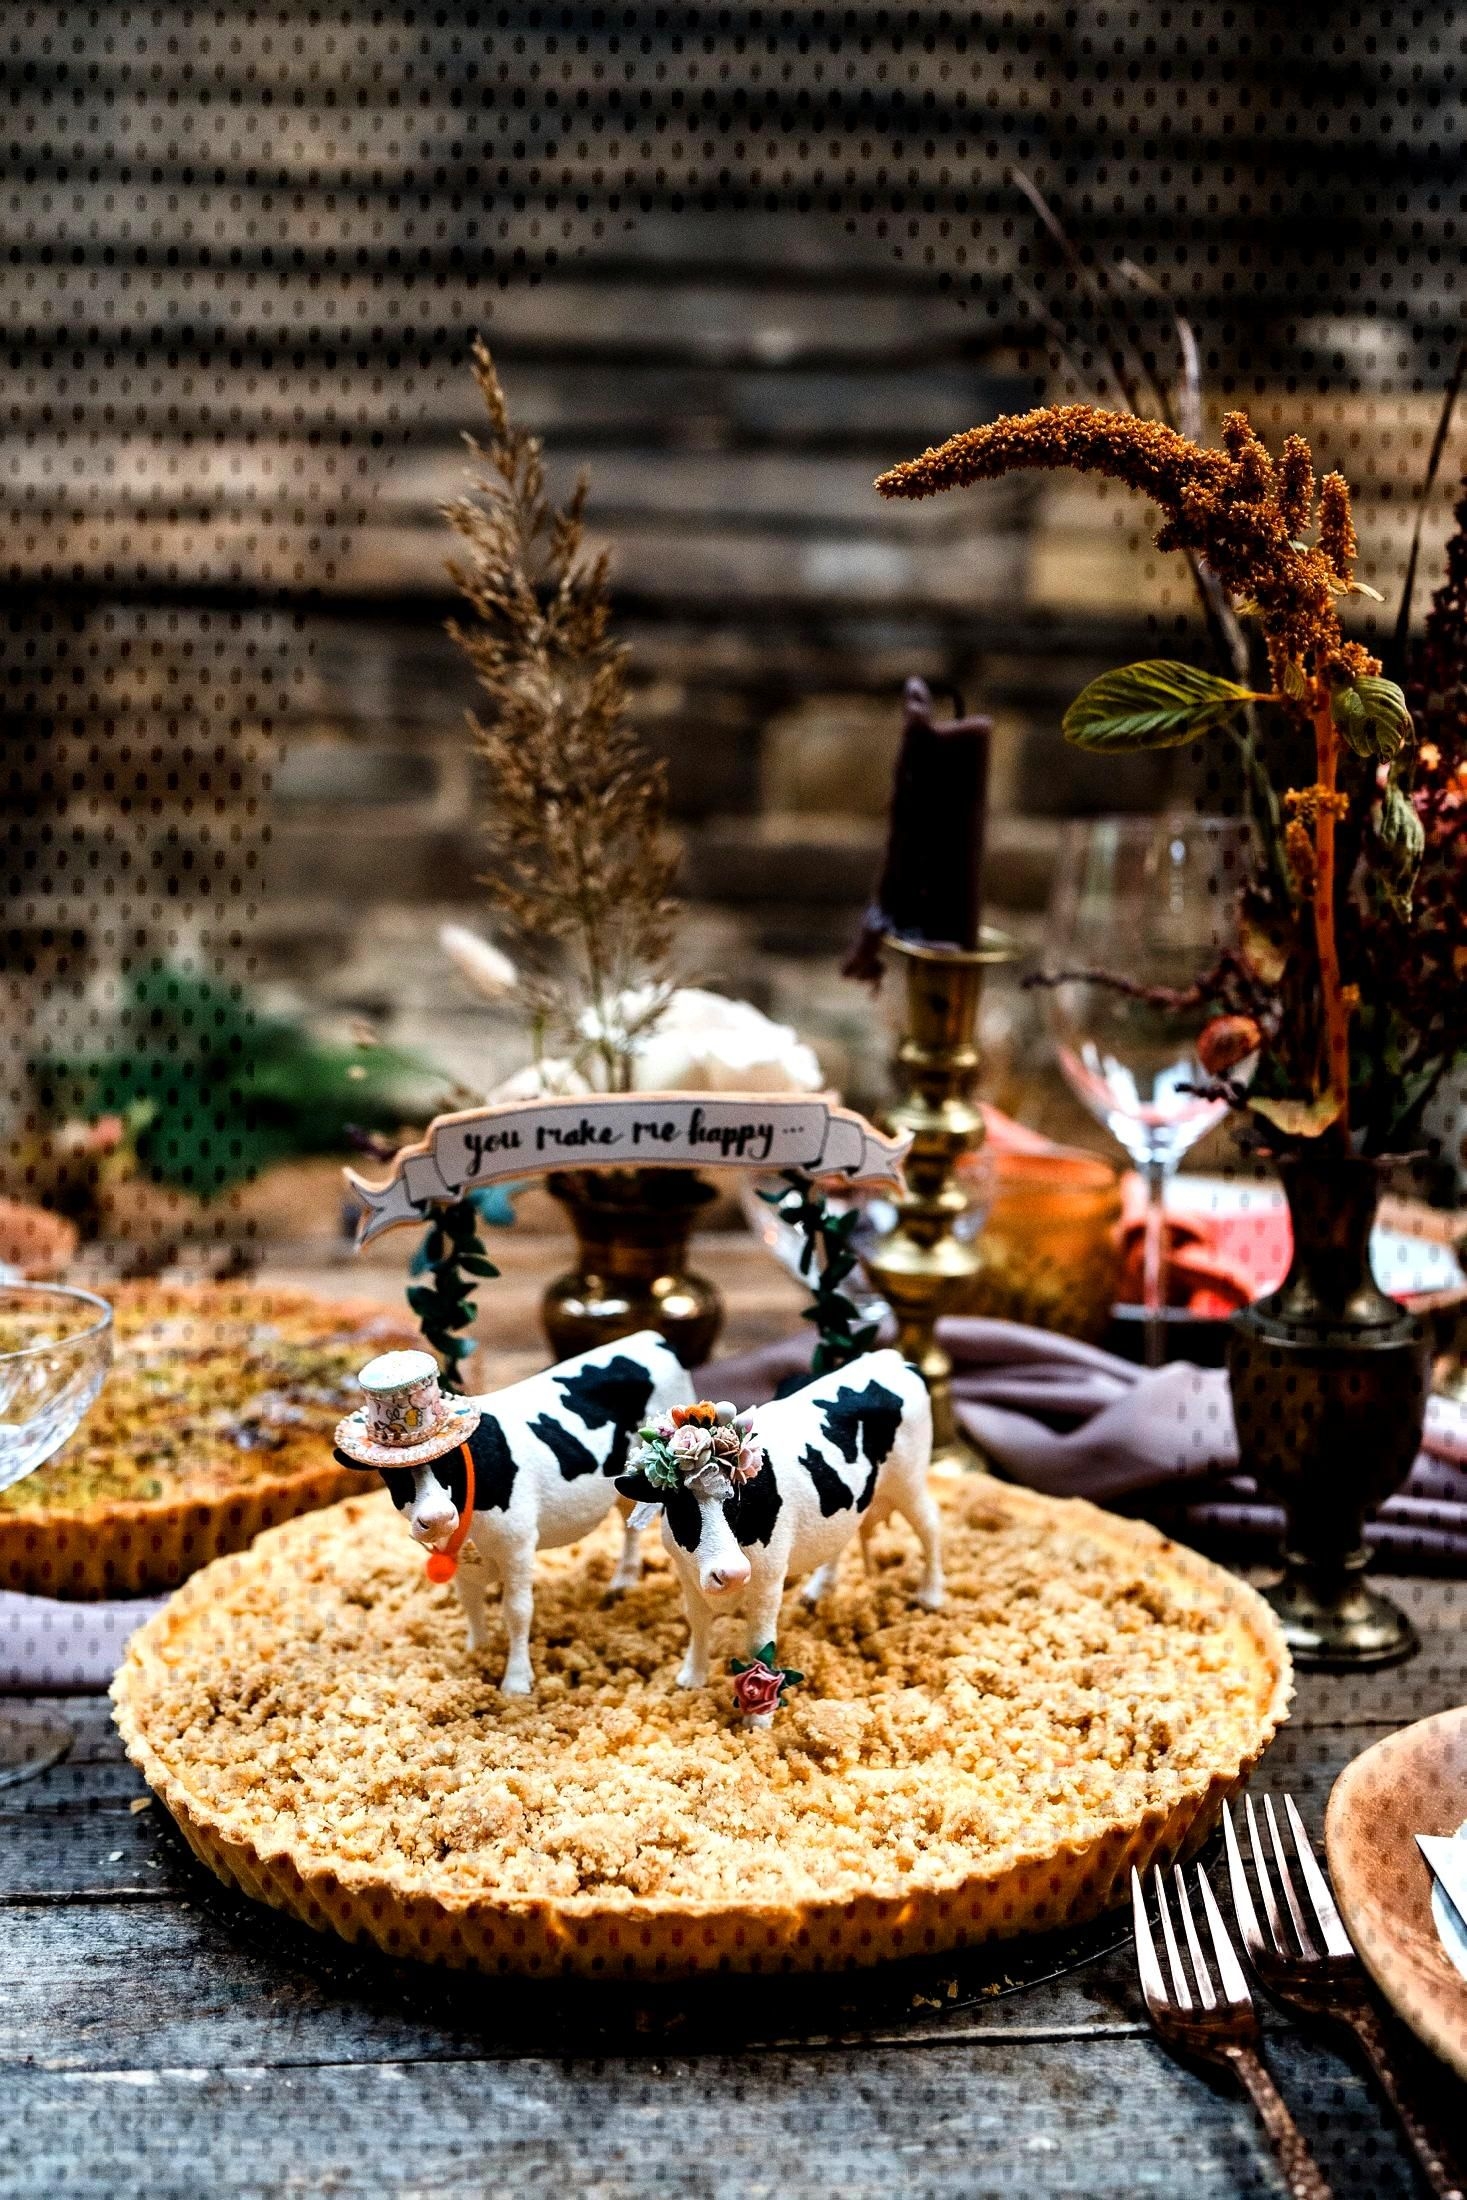 Cows in hats cake toppers Perfect for this rustic setting, cow...